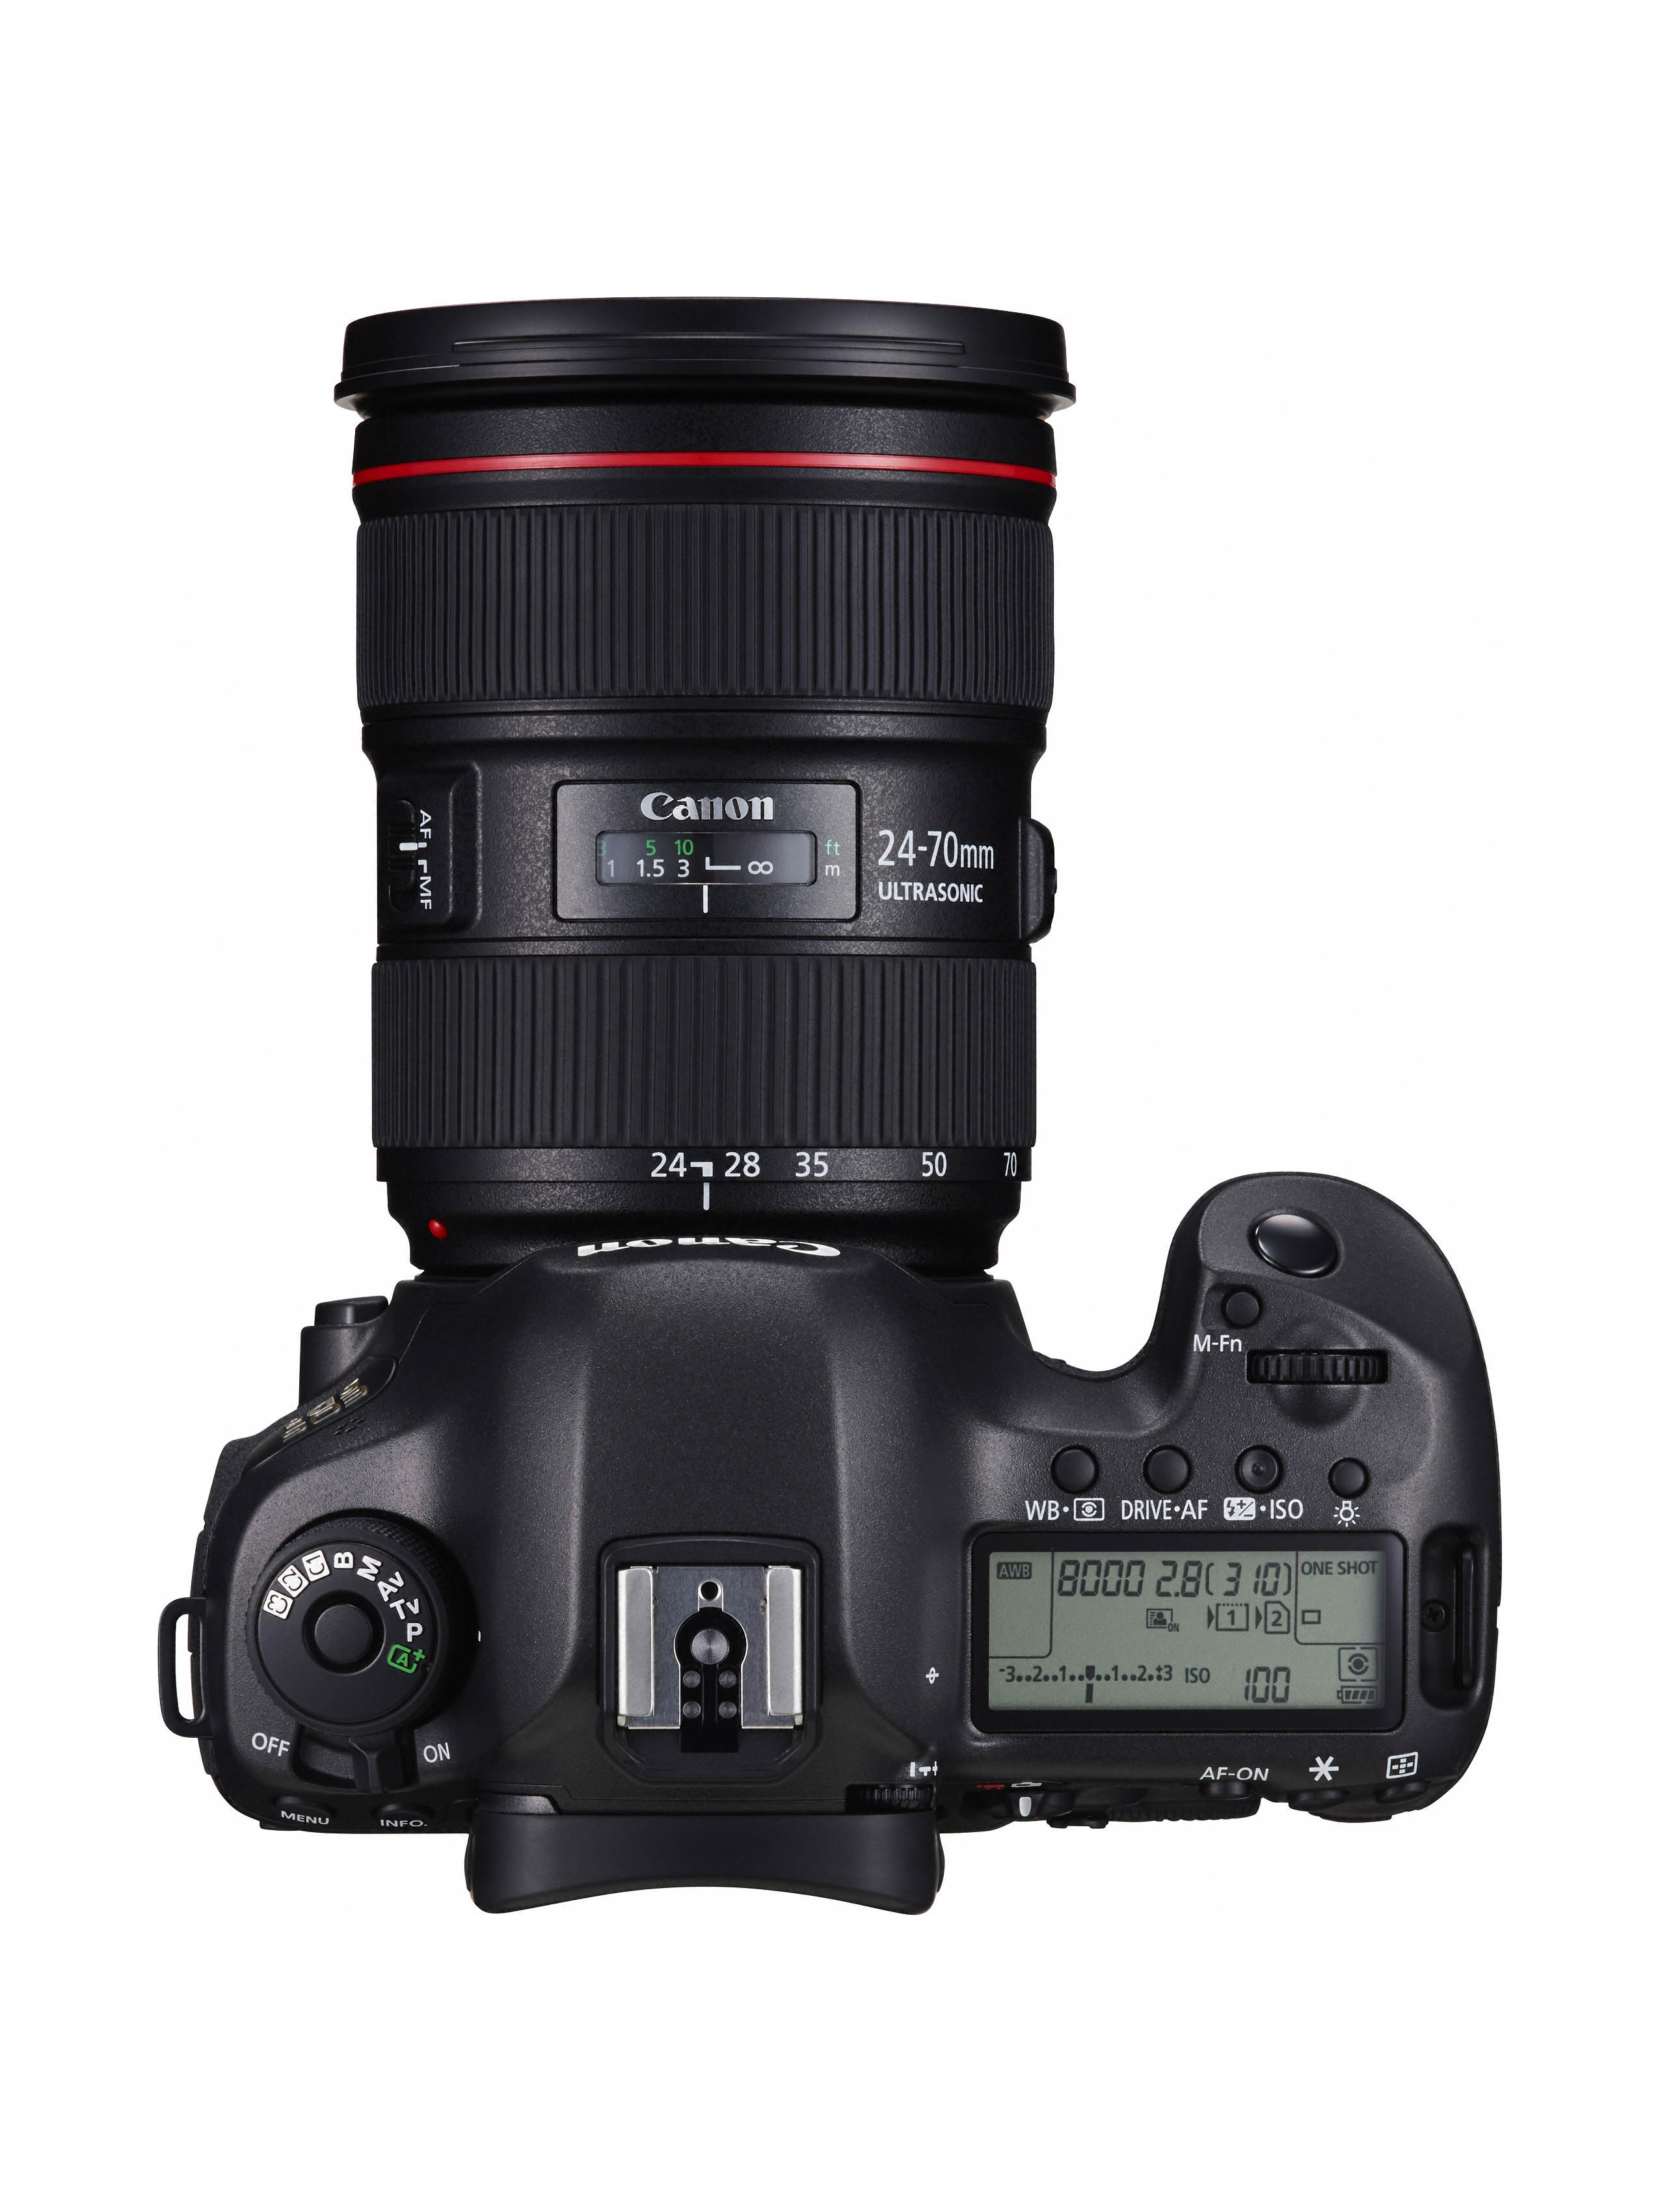 Canon-EOS-5DS-Body-Gear-News-Announced-Orms-Photographic-Blog-SouthAfrica